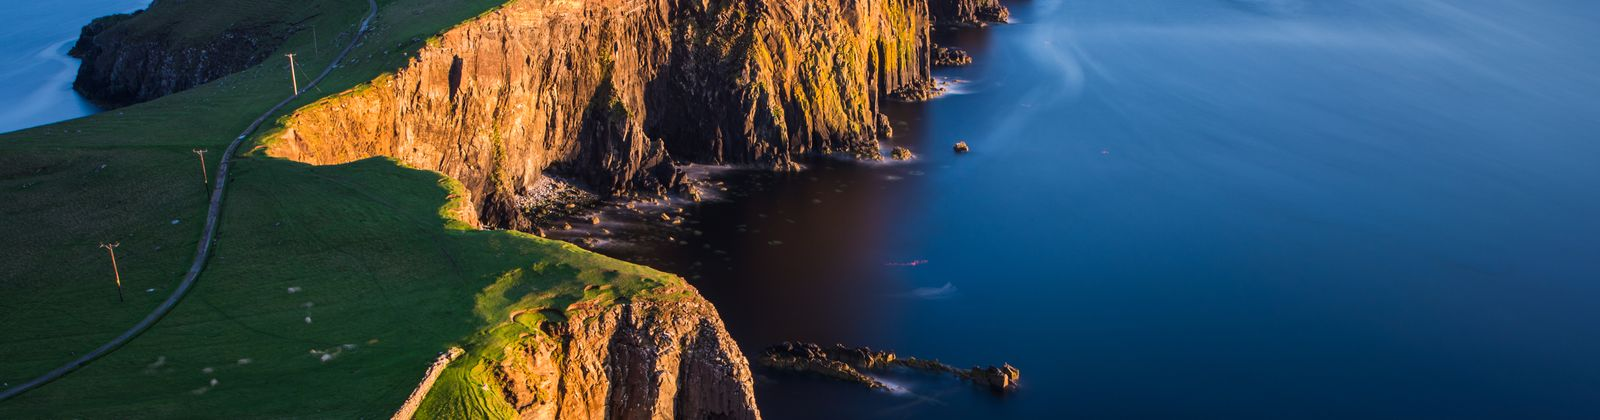 Island fling: The ultimate guide to the Scottish Isles